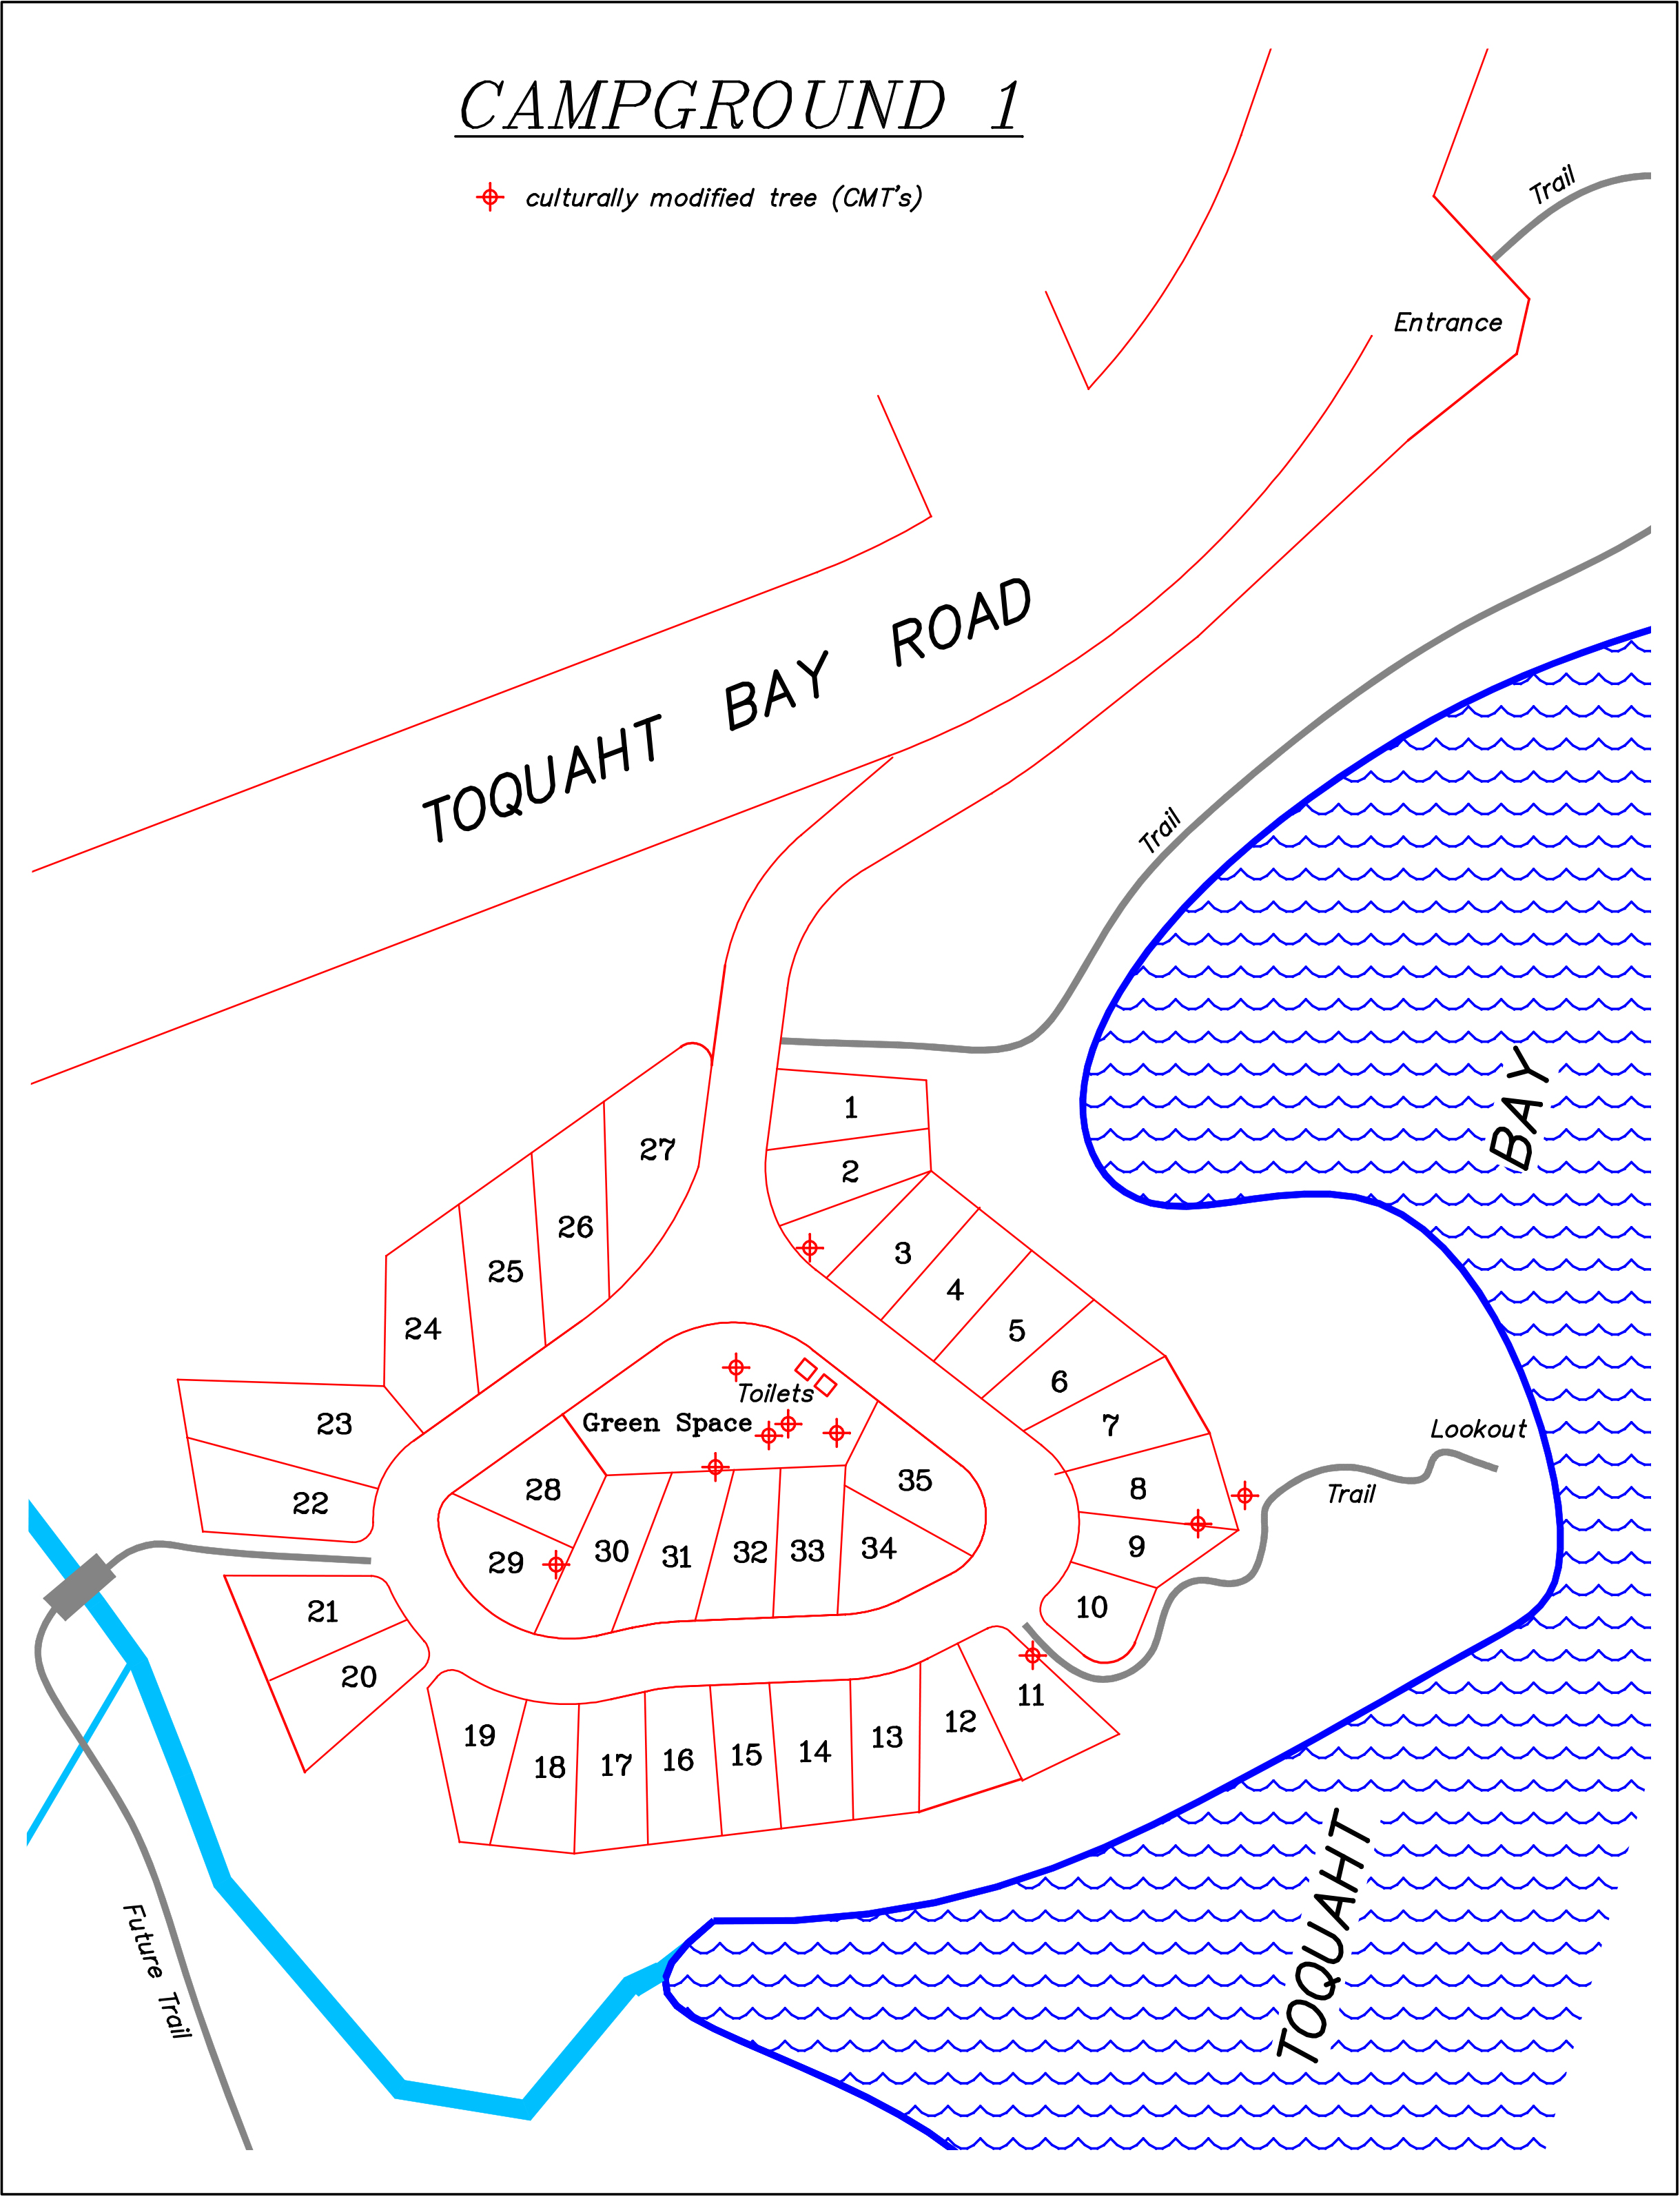 11-7279 Campground 1 Map.jpg